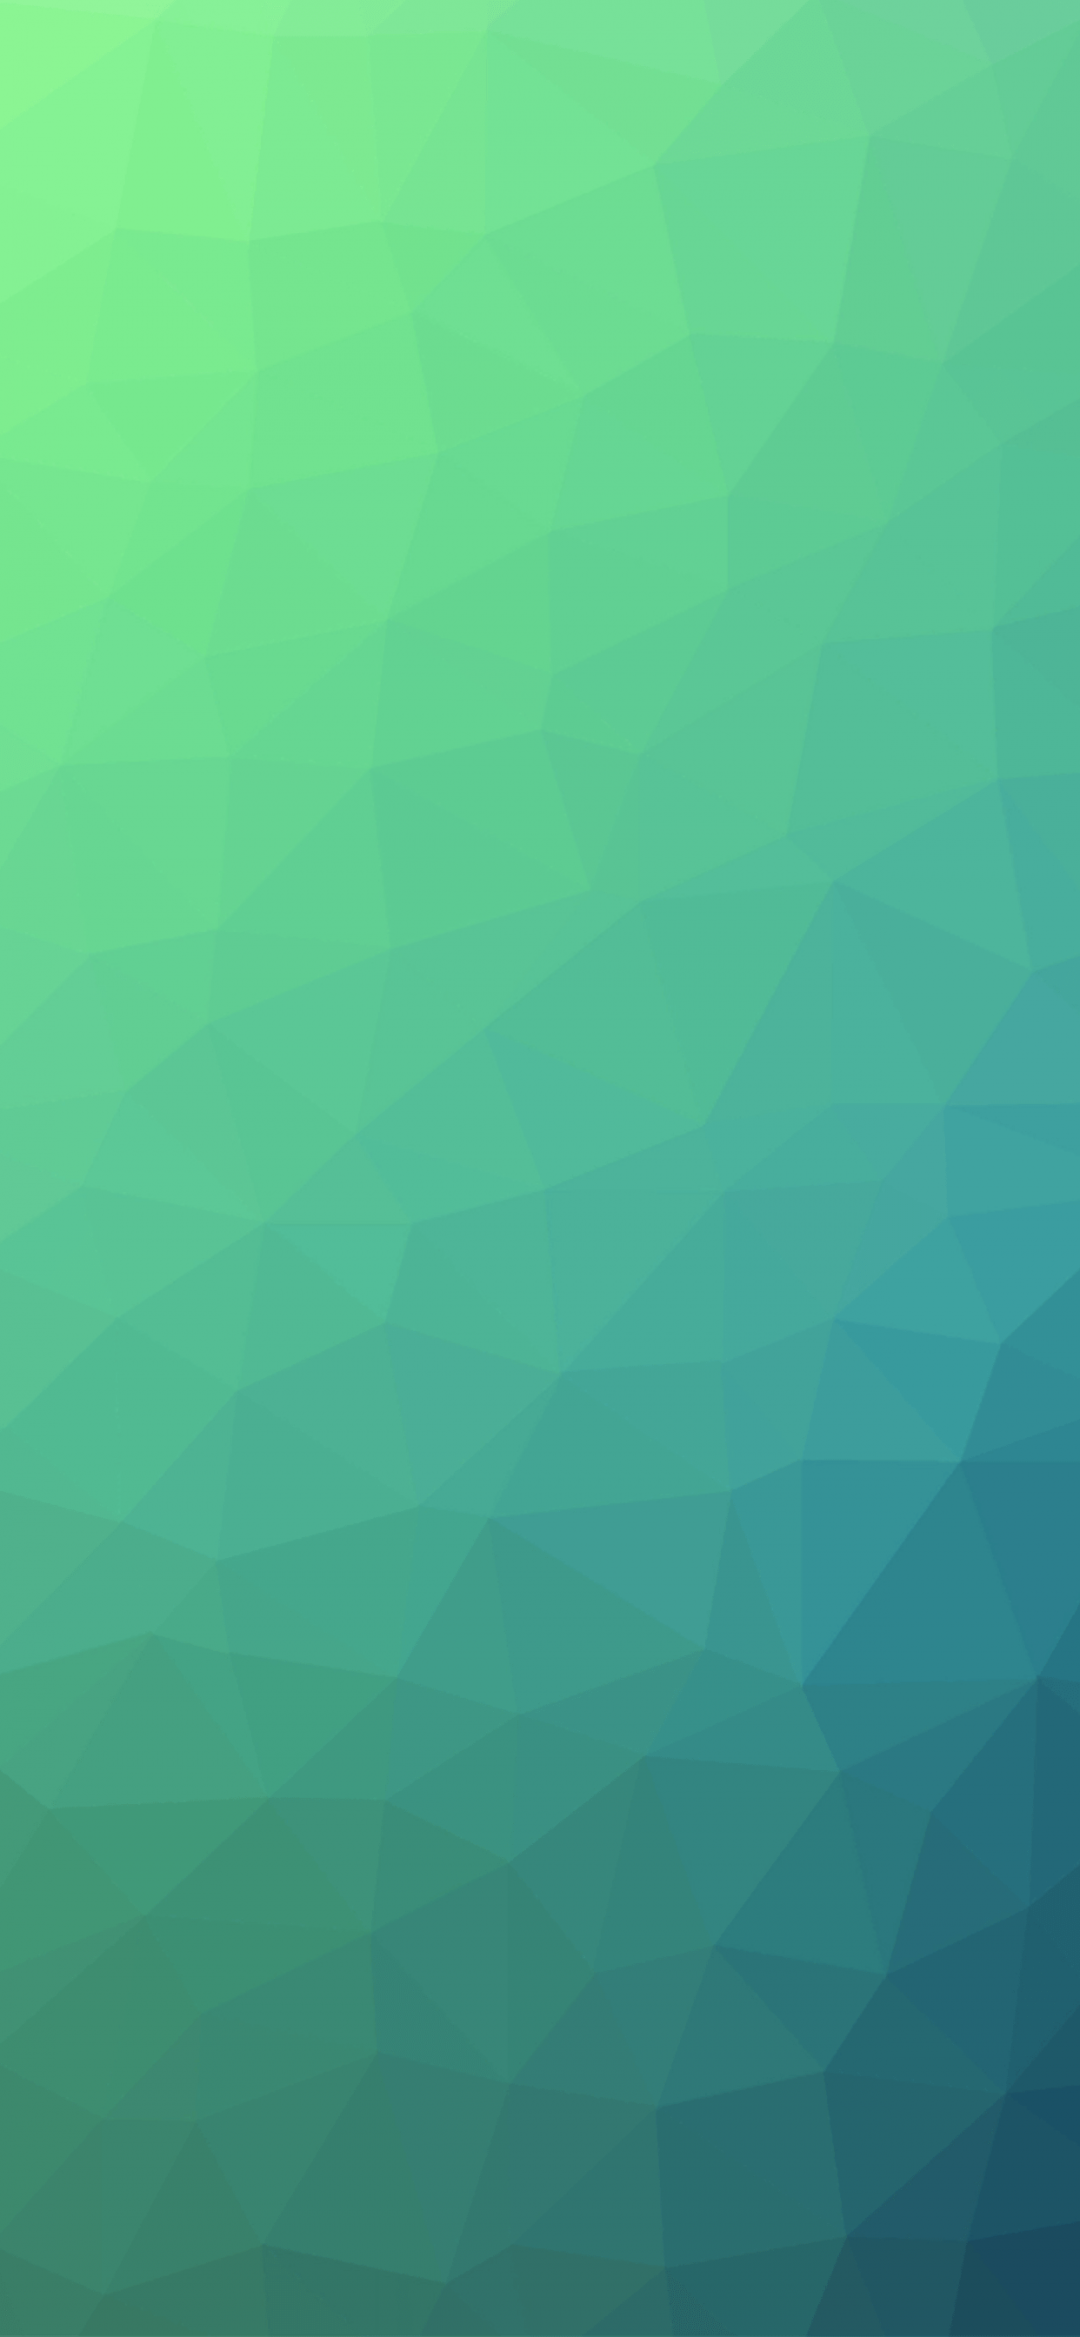 Mint Green Aesthetic HD Wallpapers (Desktop Background / Android / iPhone) (1080p, 4k) (35015) - 3D / Abstract